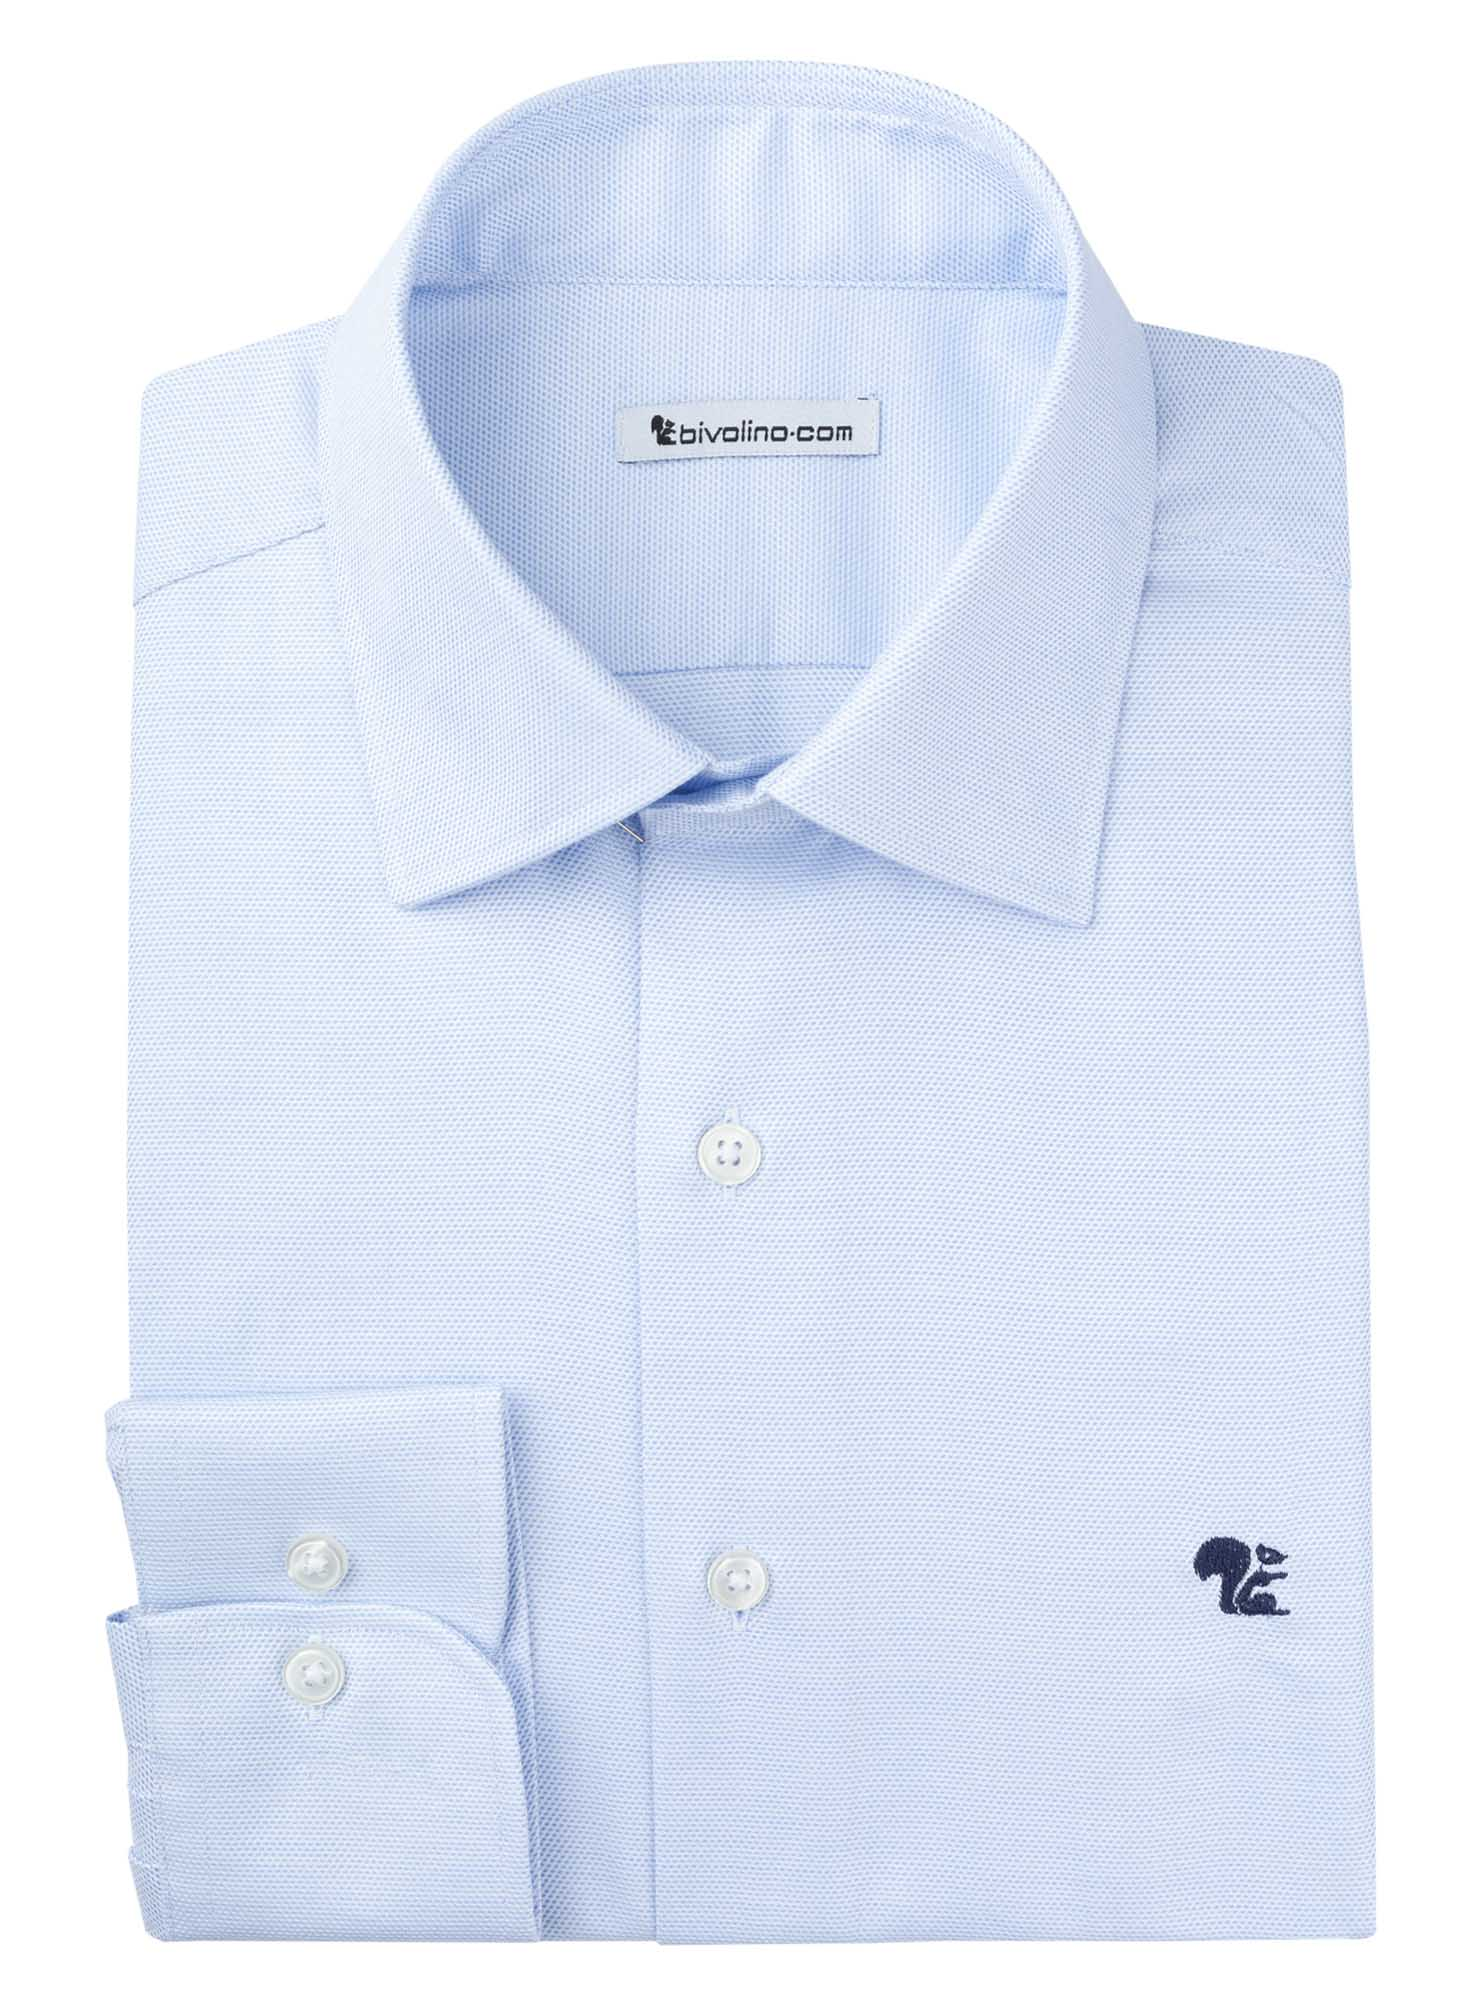 BOLZANO - Men's Shirt dobby oxford - ROYAL PANAMA 3-REPTON